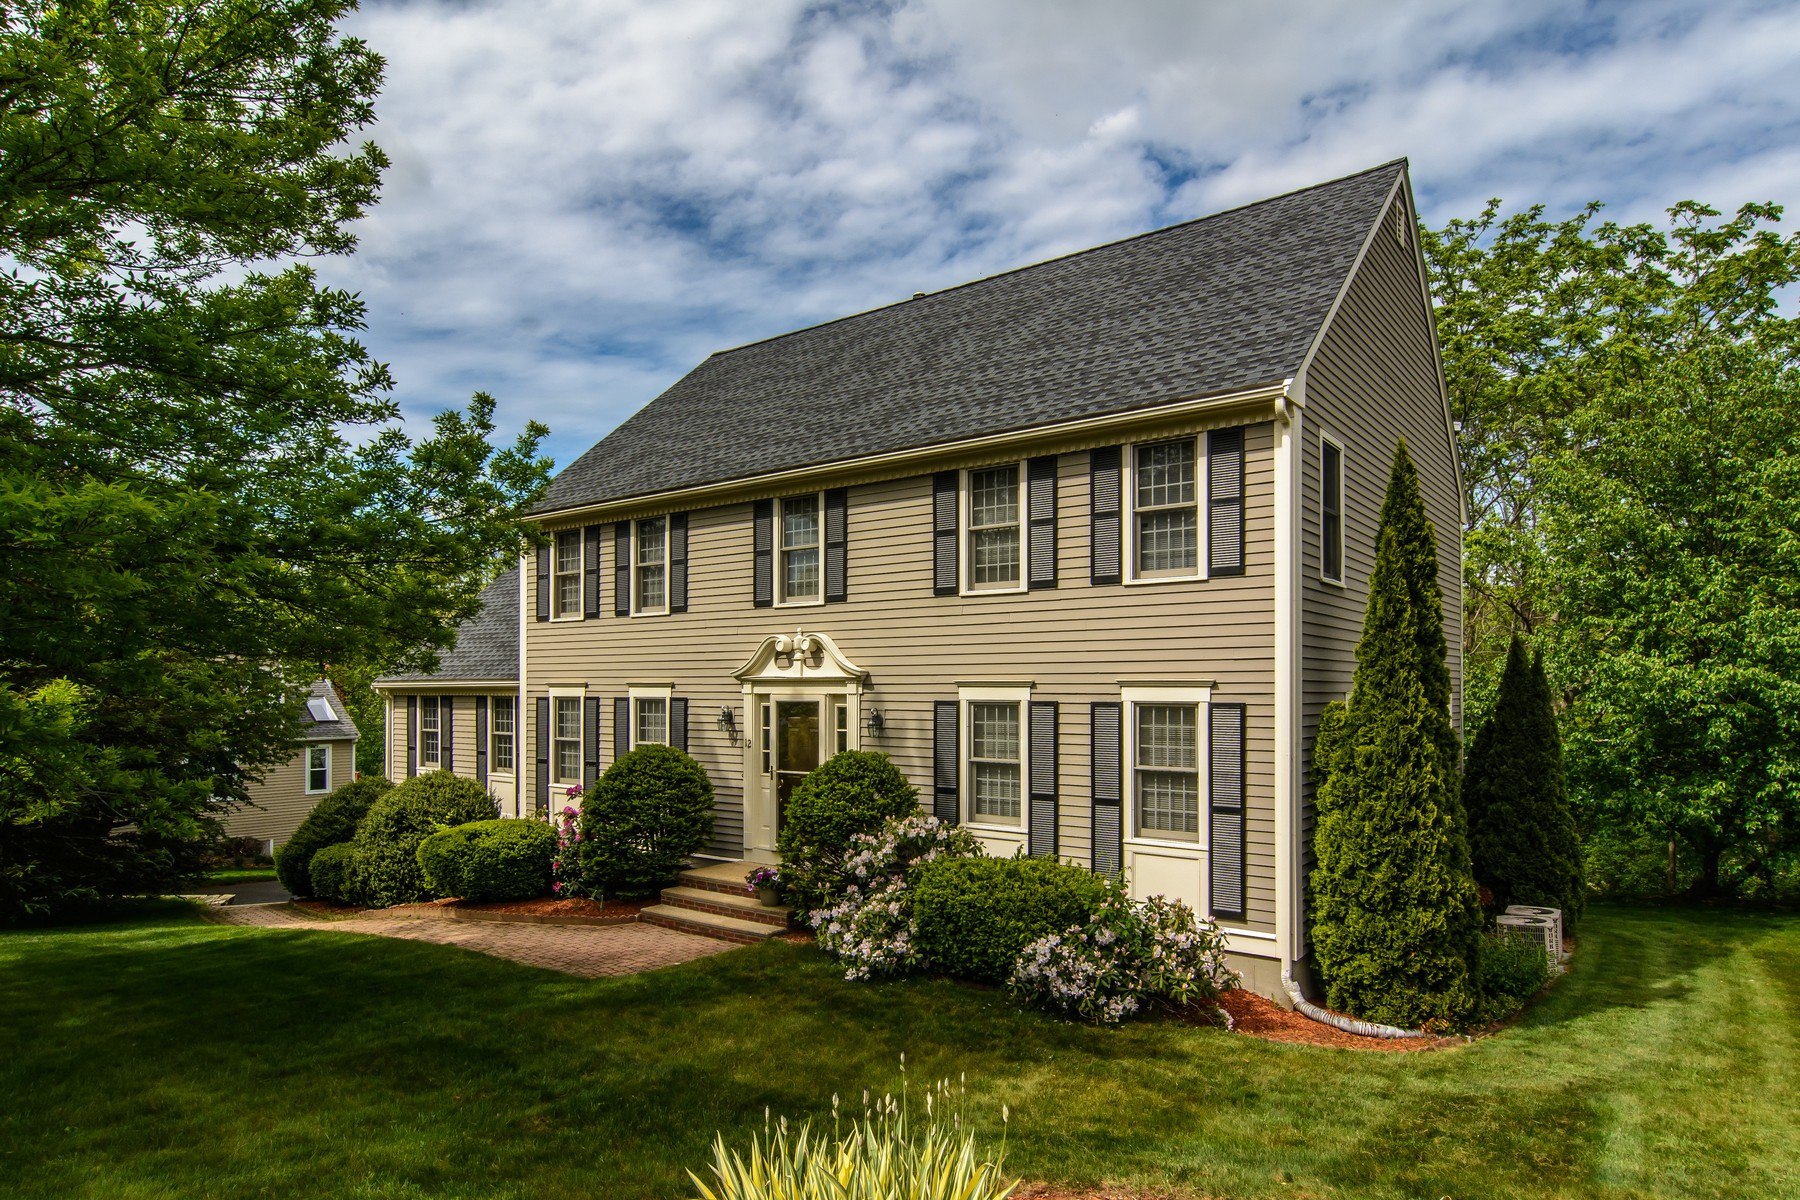 Single Family Home for Sale at Exquisite Colonial 12 Piccadilly Way Westborough, Massachusetts, 01581 United States